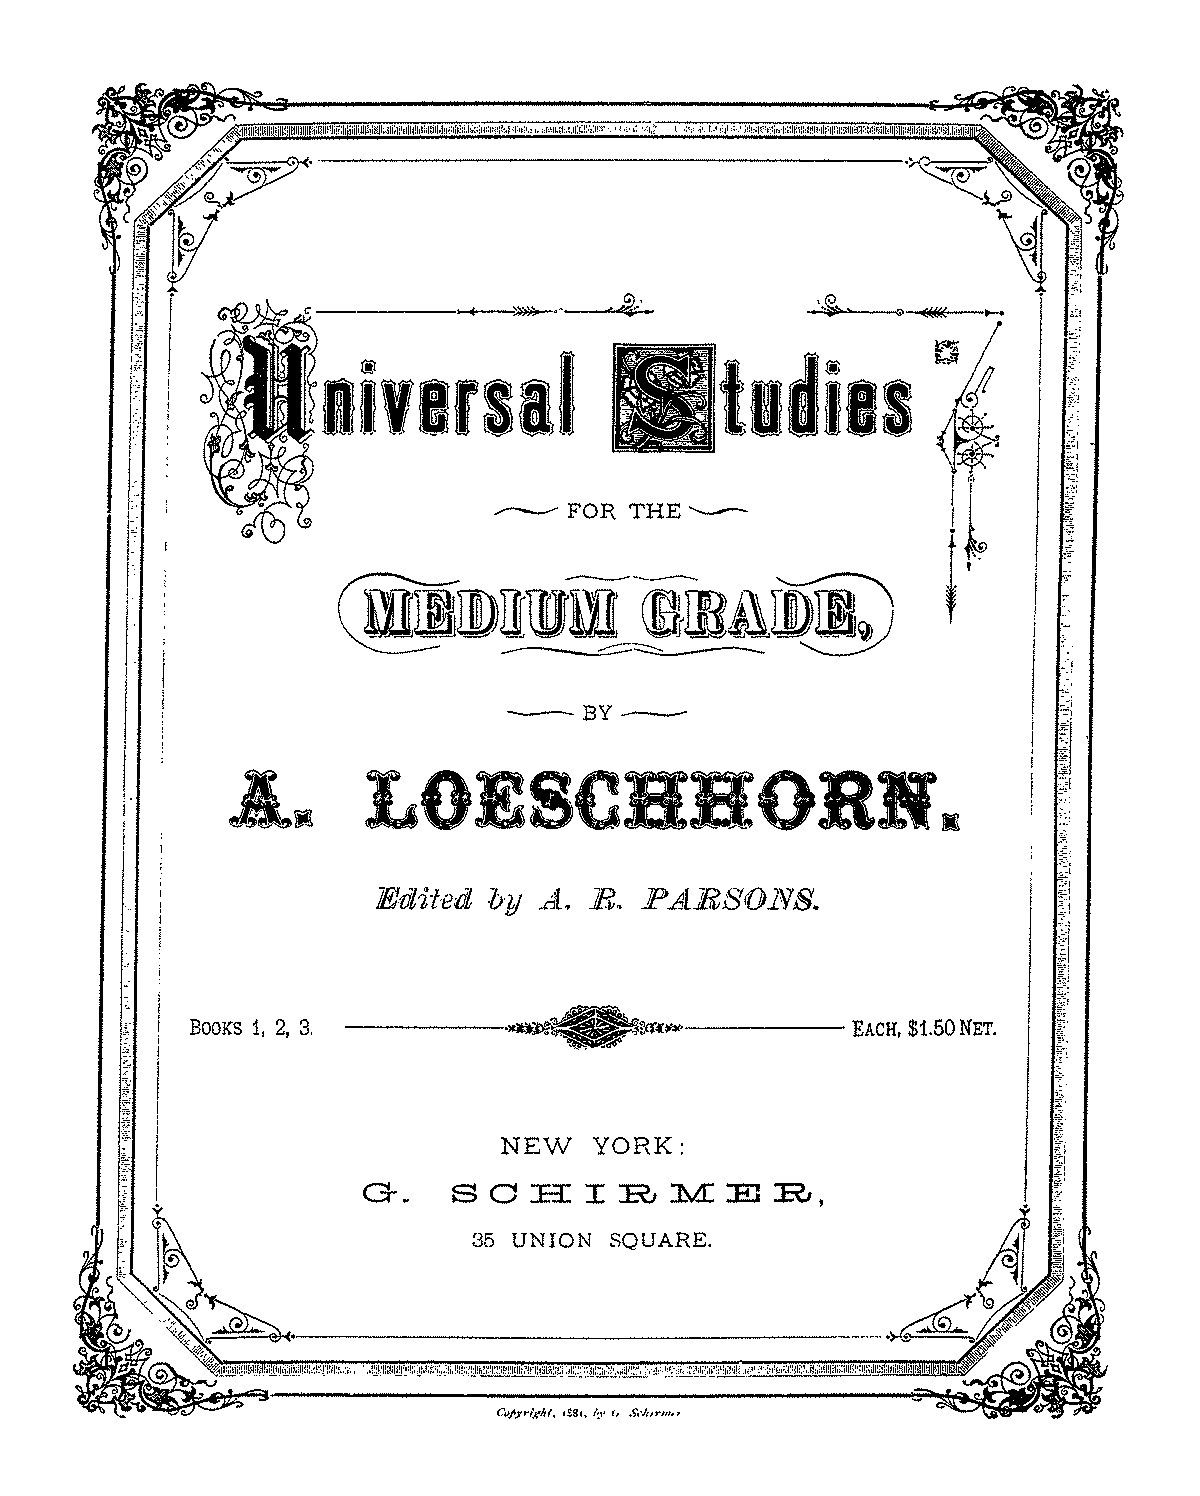 PMLP86458-Loeshorn A. Universal studies for the medium grade op.169 I book.pdf